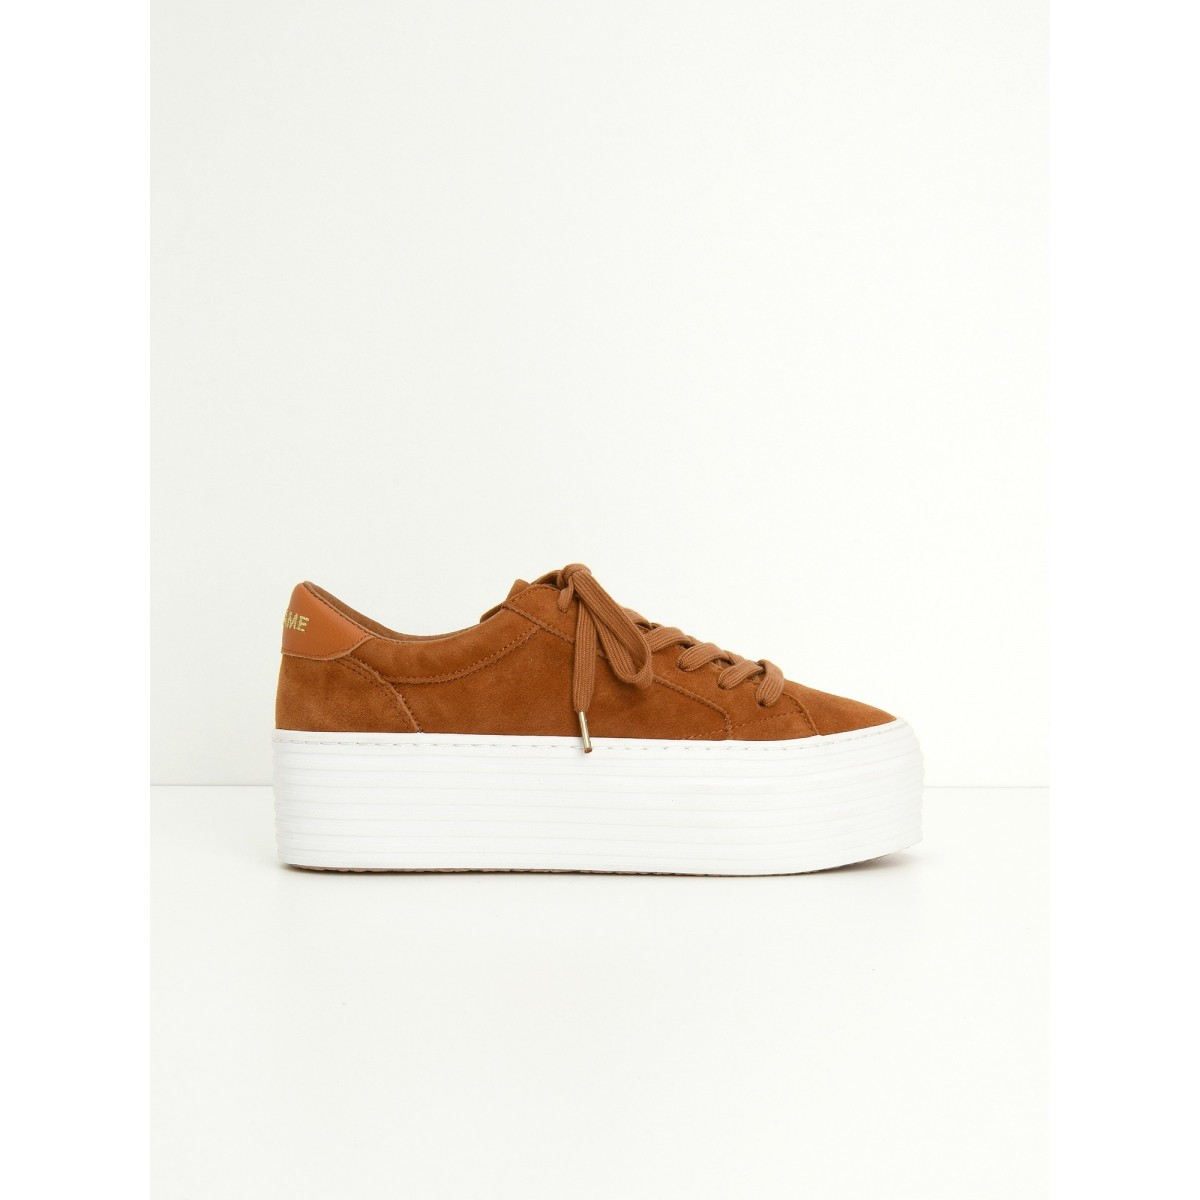 No Name SPICE SNEAKER - GOAT SUEDE - PUMPKIN